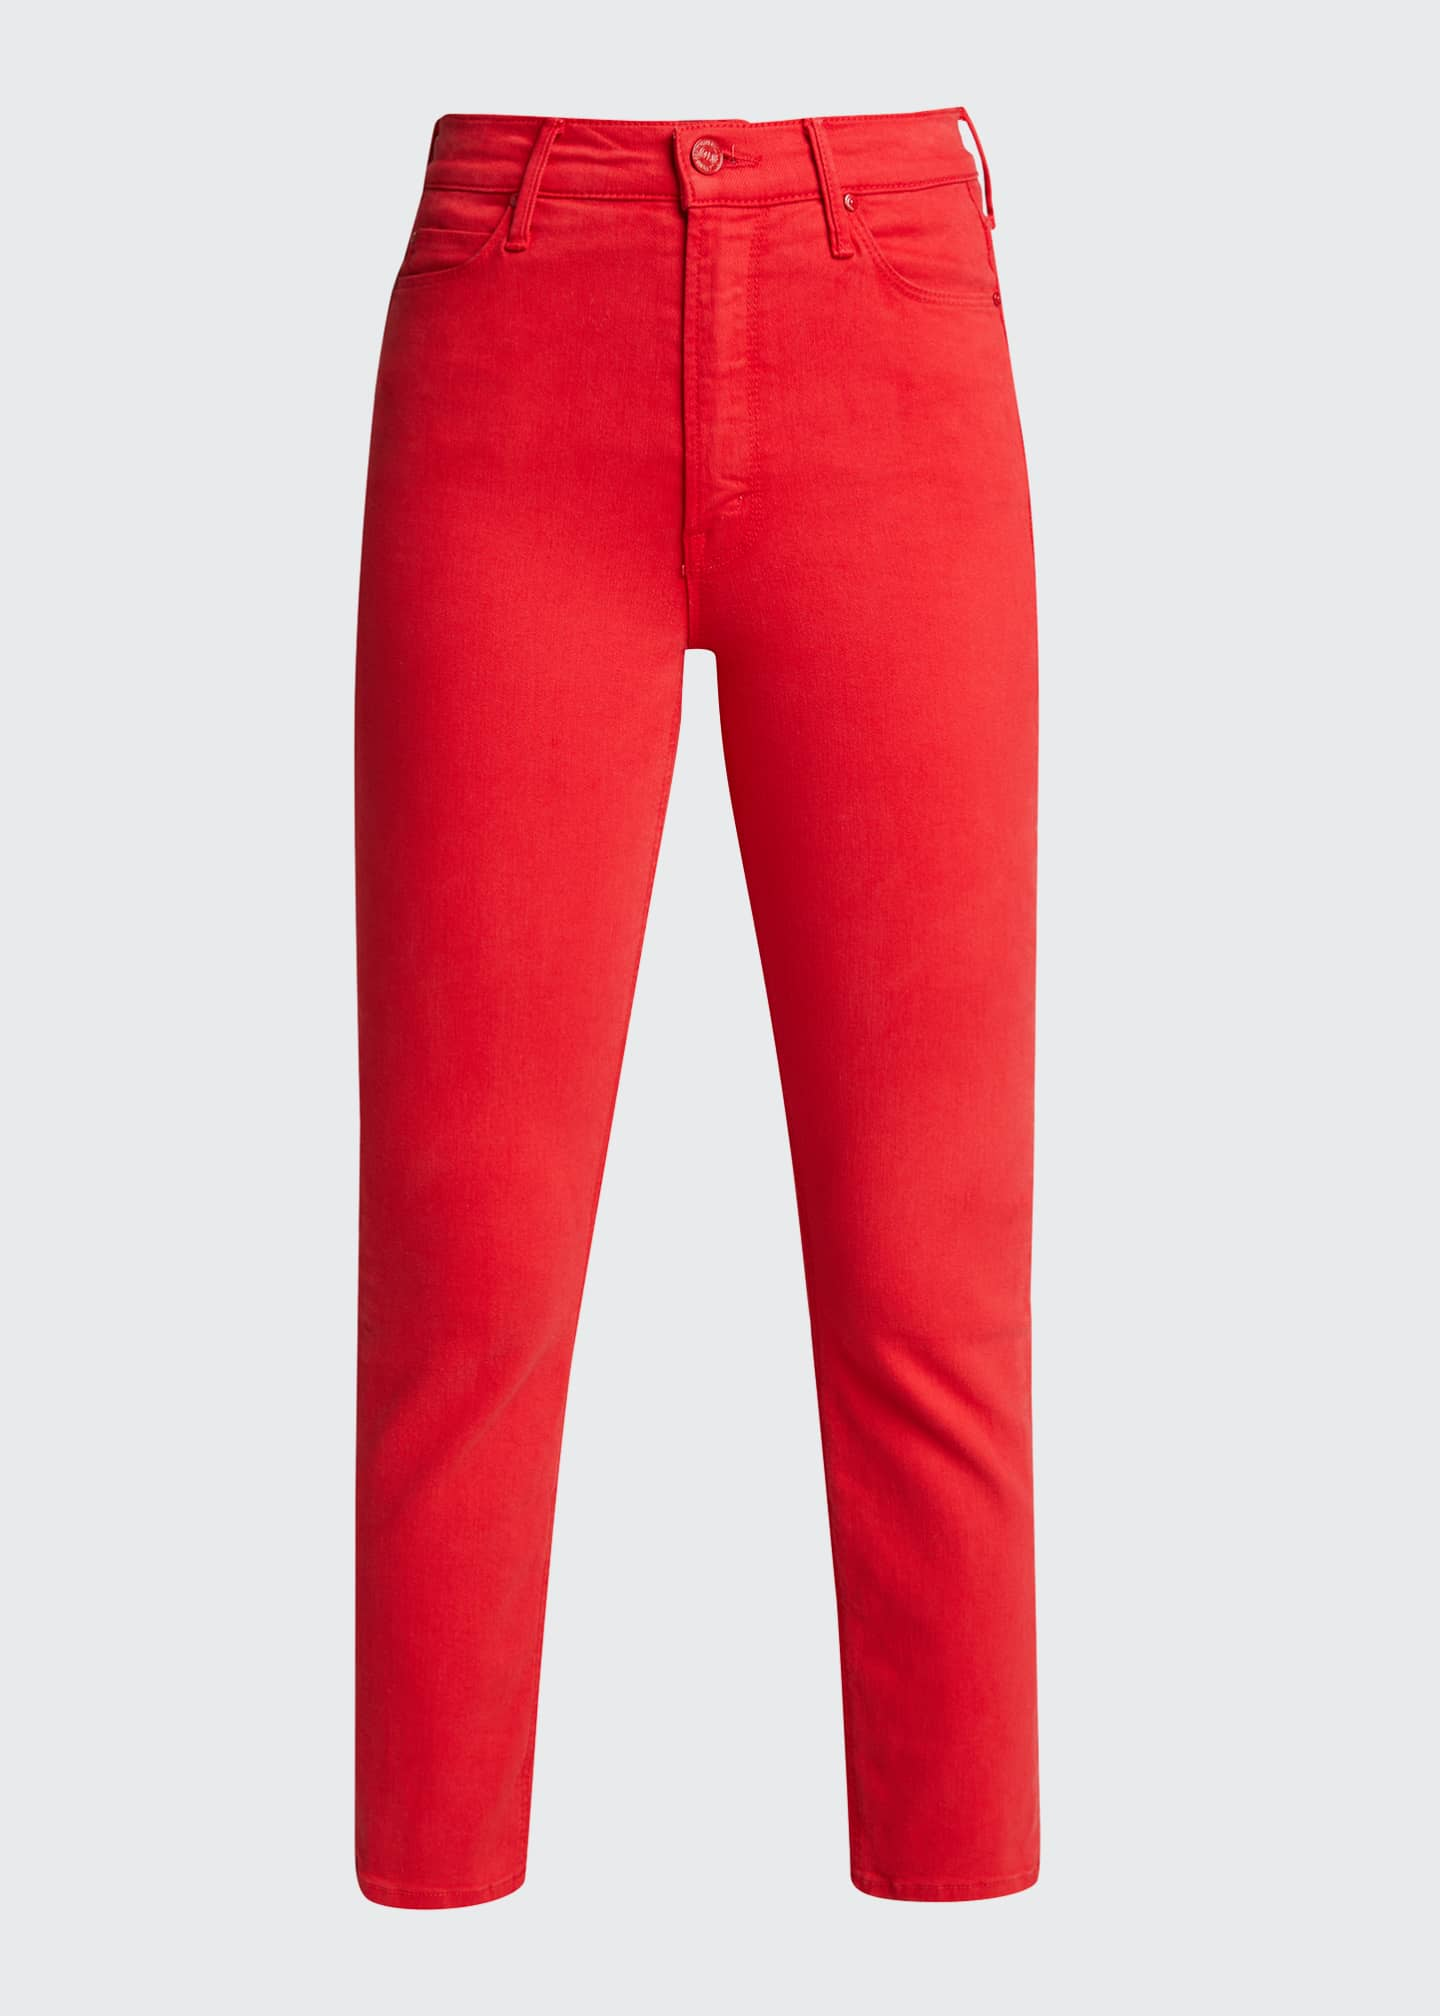 Image 5 of 5: The Dazzler Ankle Skinny Jeans